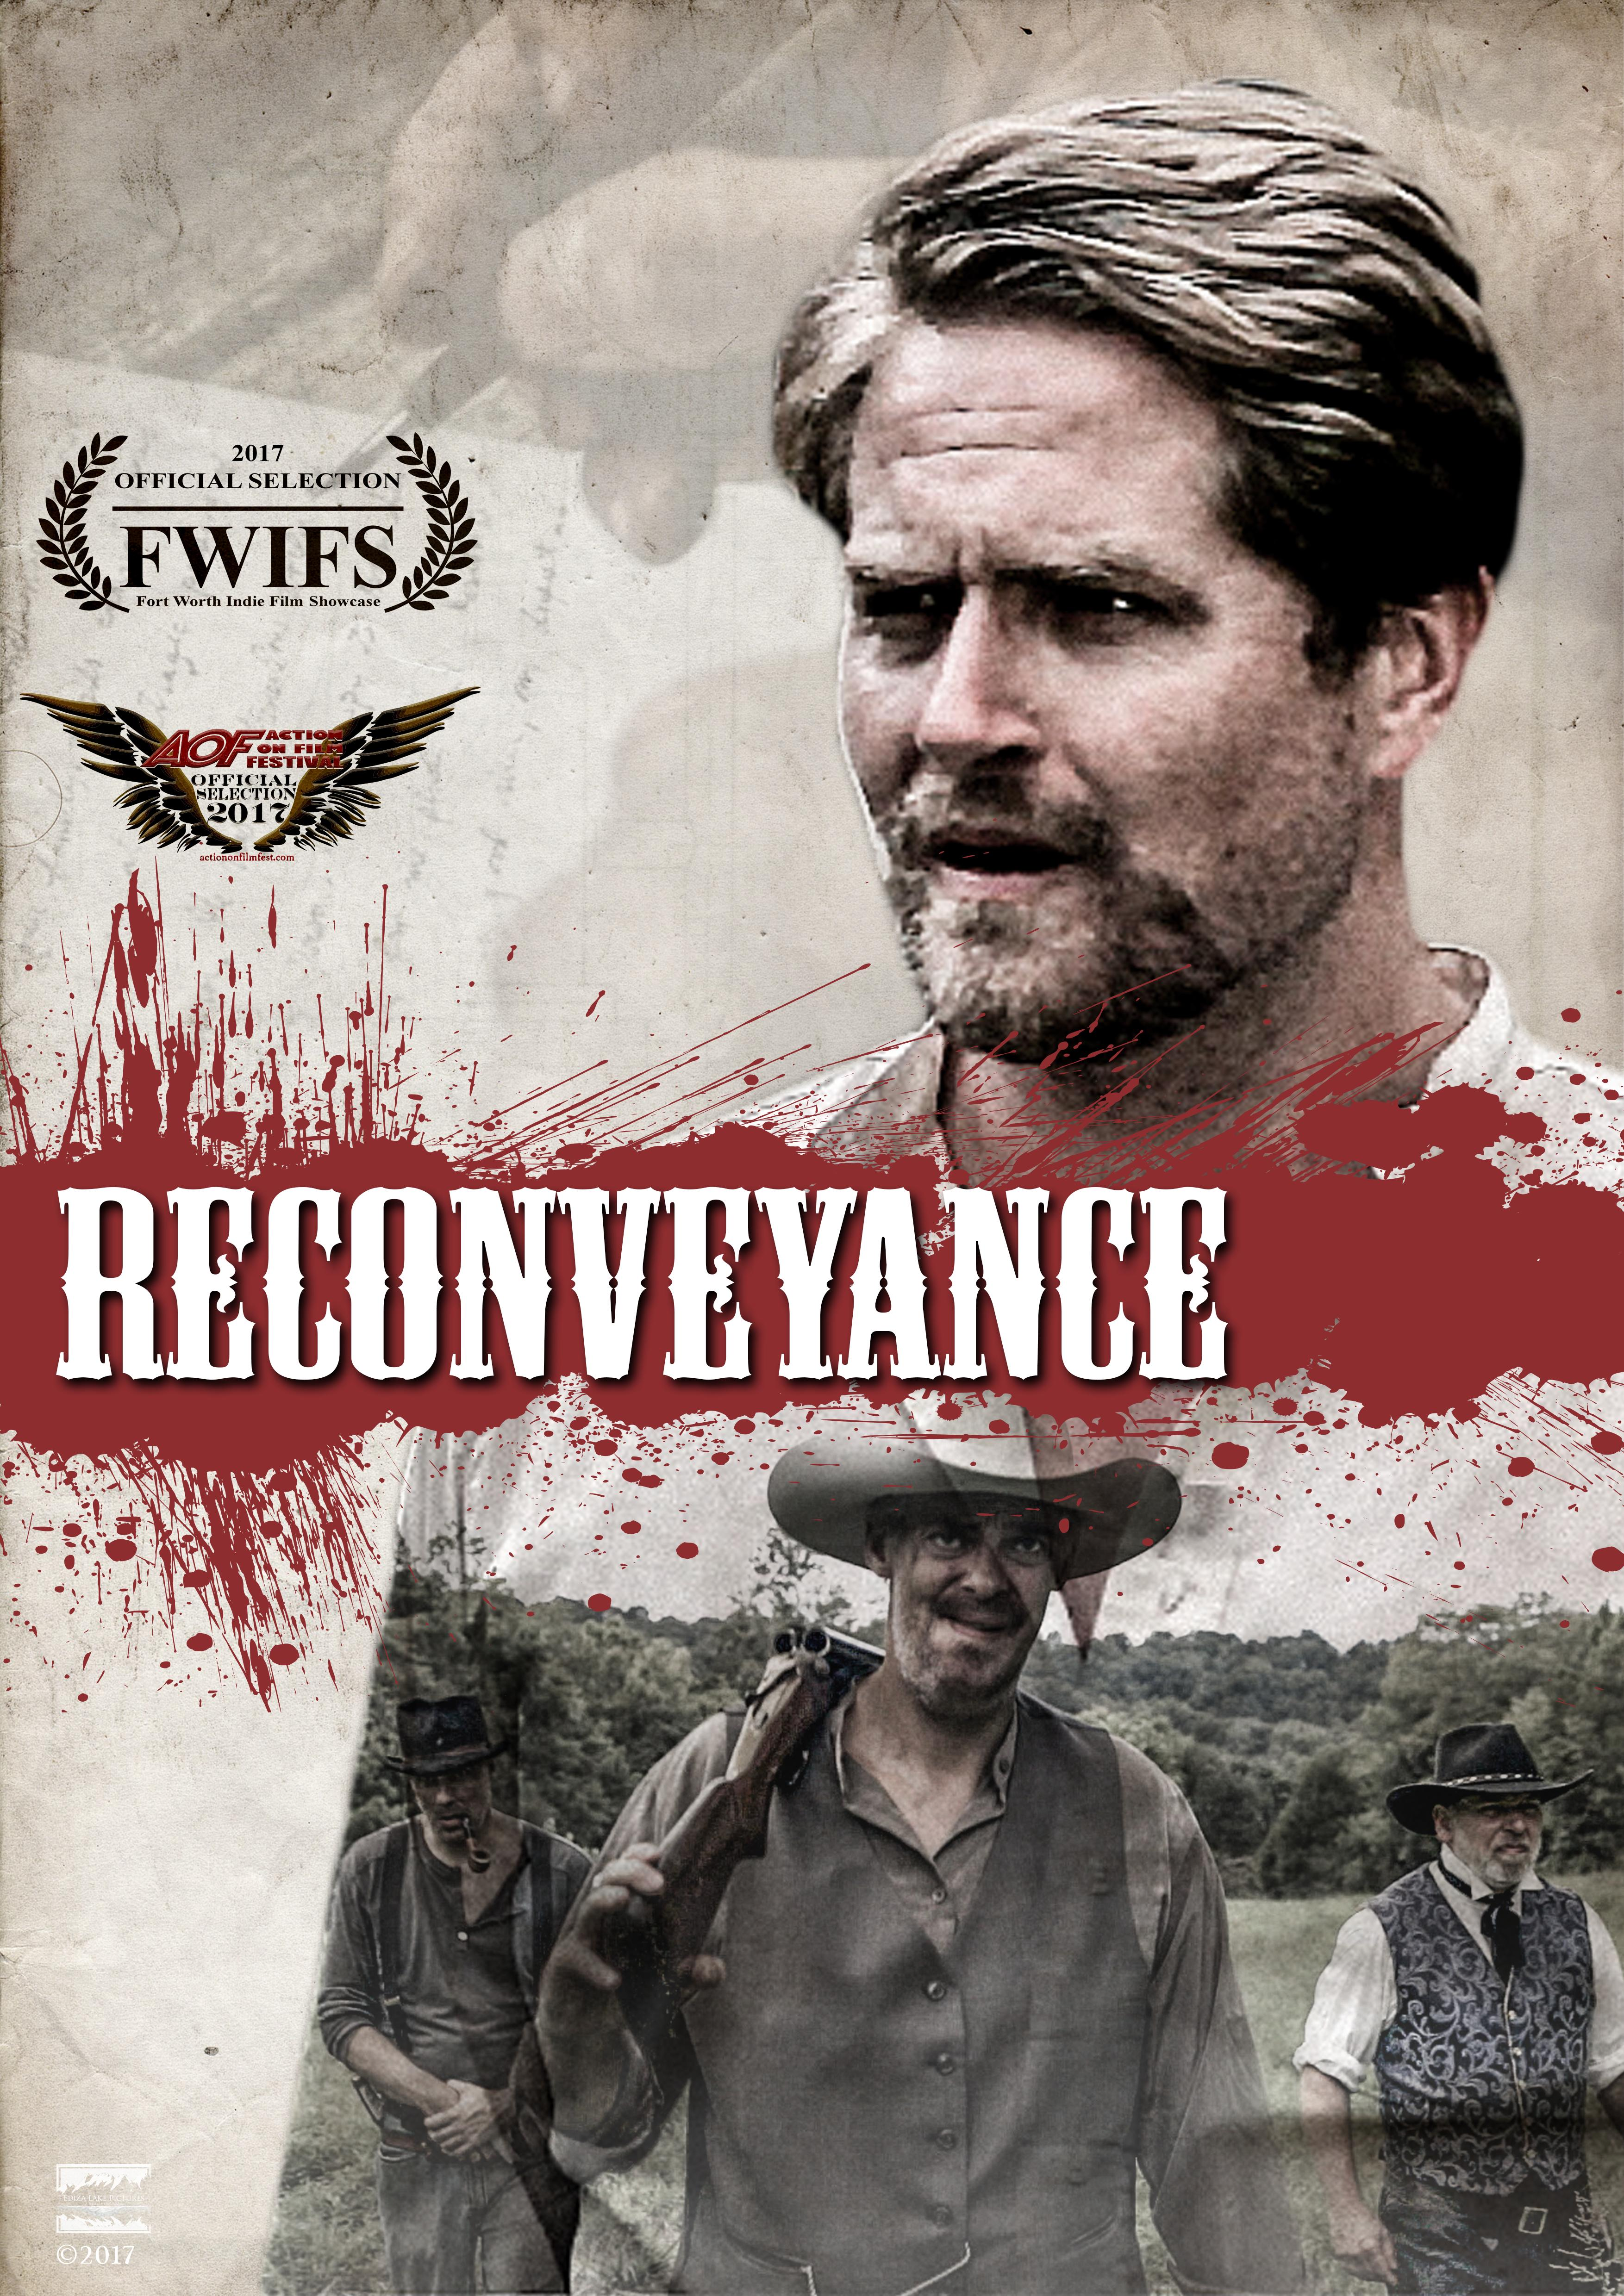 Reconveyance: Scene 49, What Child Is This